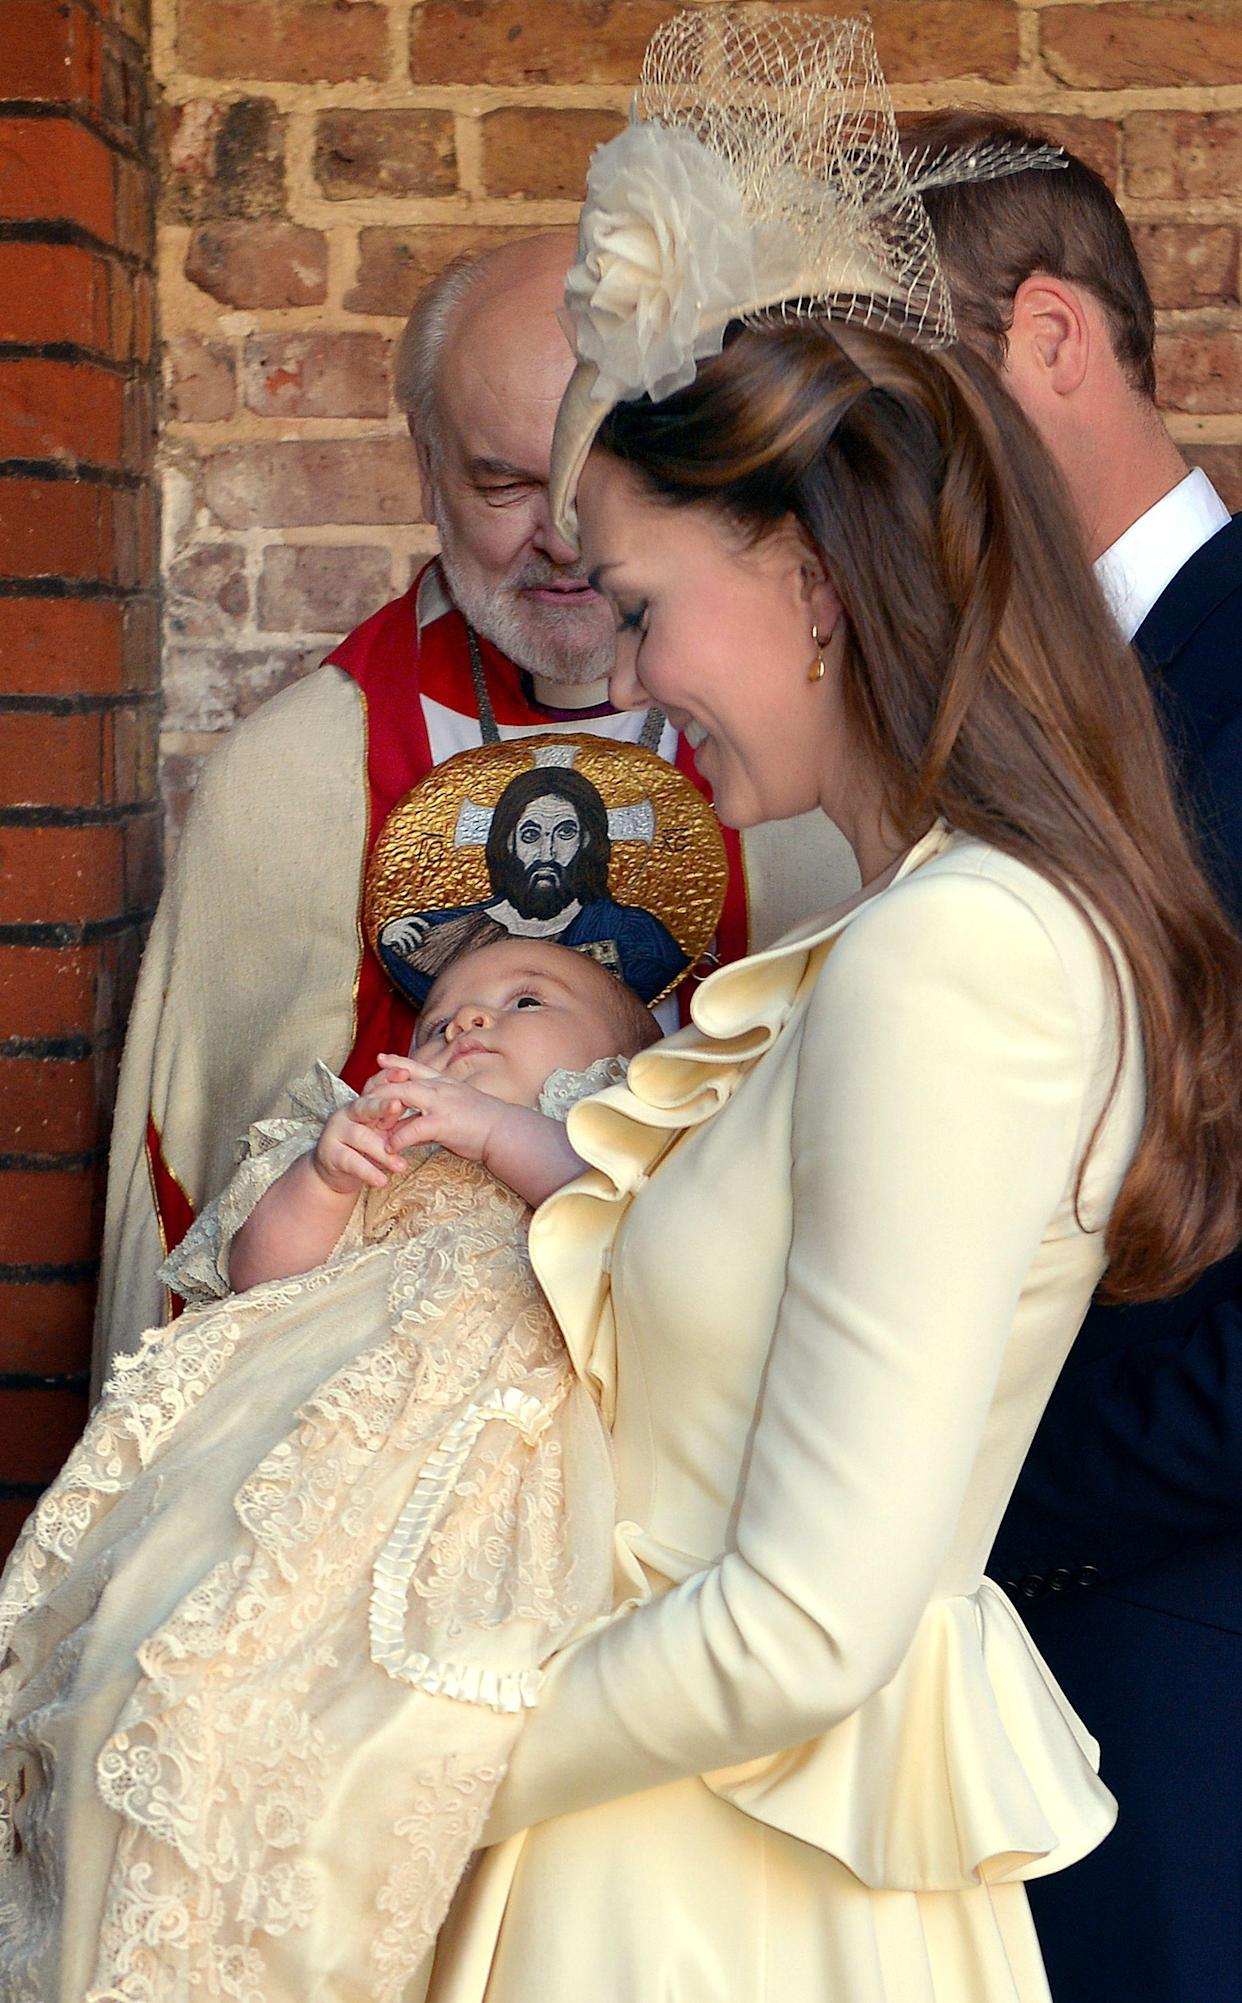 The Duchess of Cambridge carries her son Prince George following his christening at the Chapel Royal in St James's Palace by the Archbishop of Canterbury in central London.